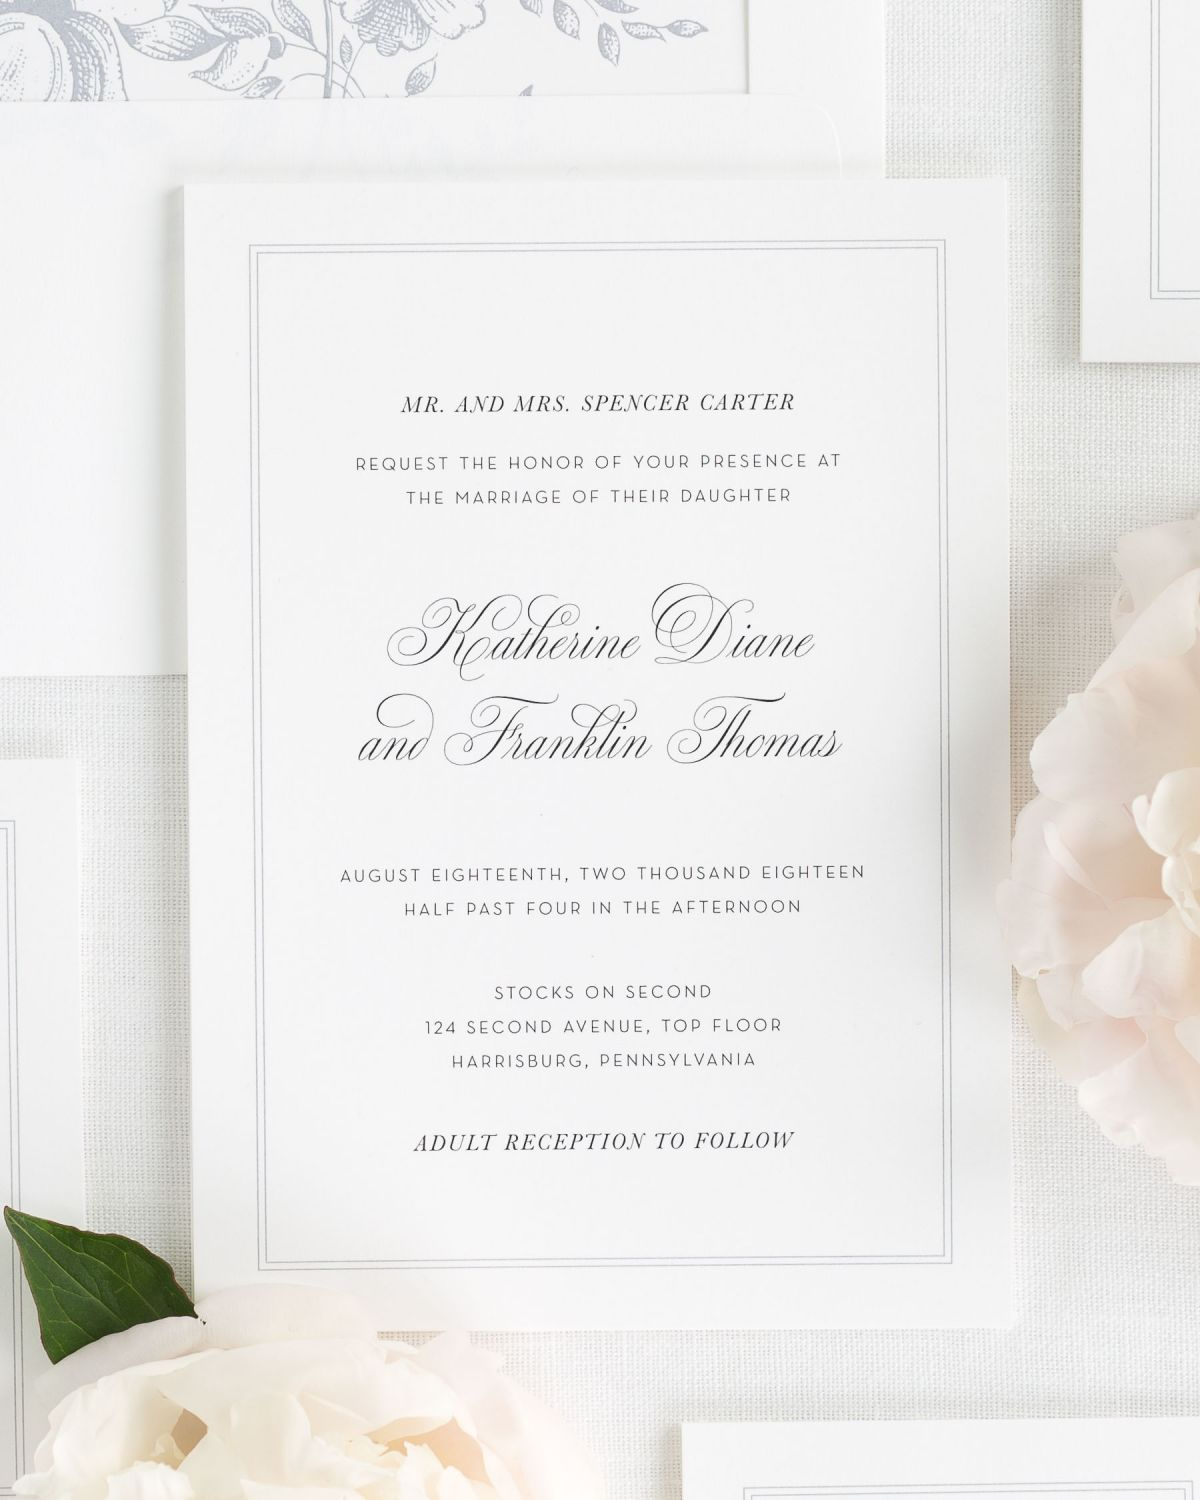 Simply Classic Wedding Invitations Wedding Invitations by Shine – Wedding Invitations Classic